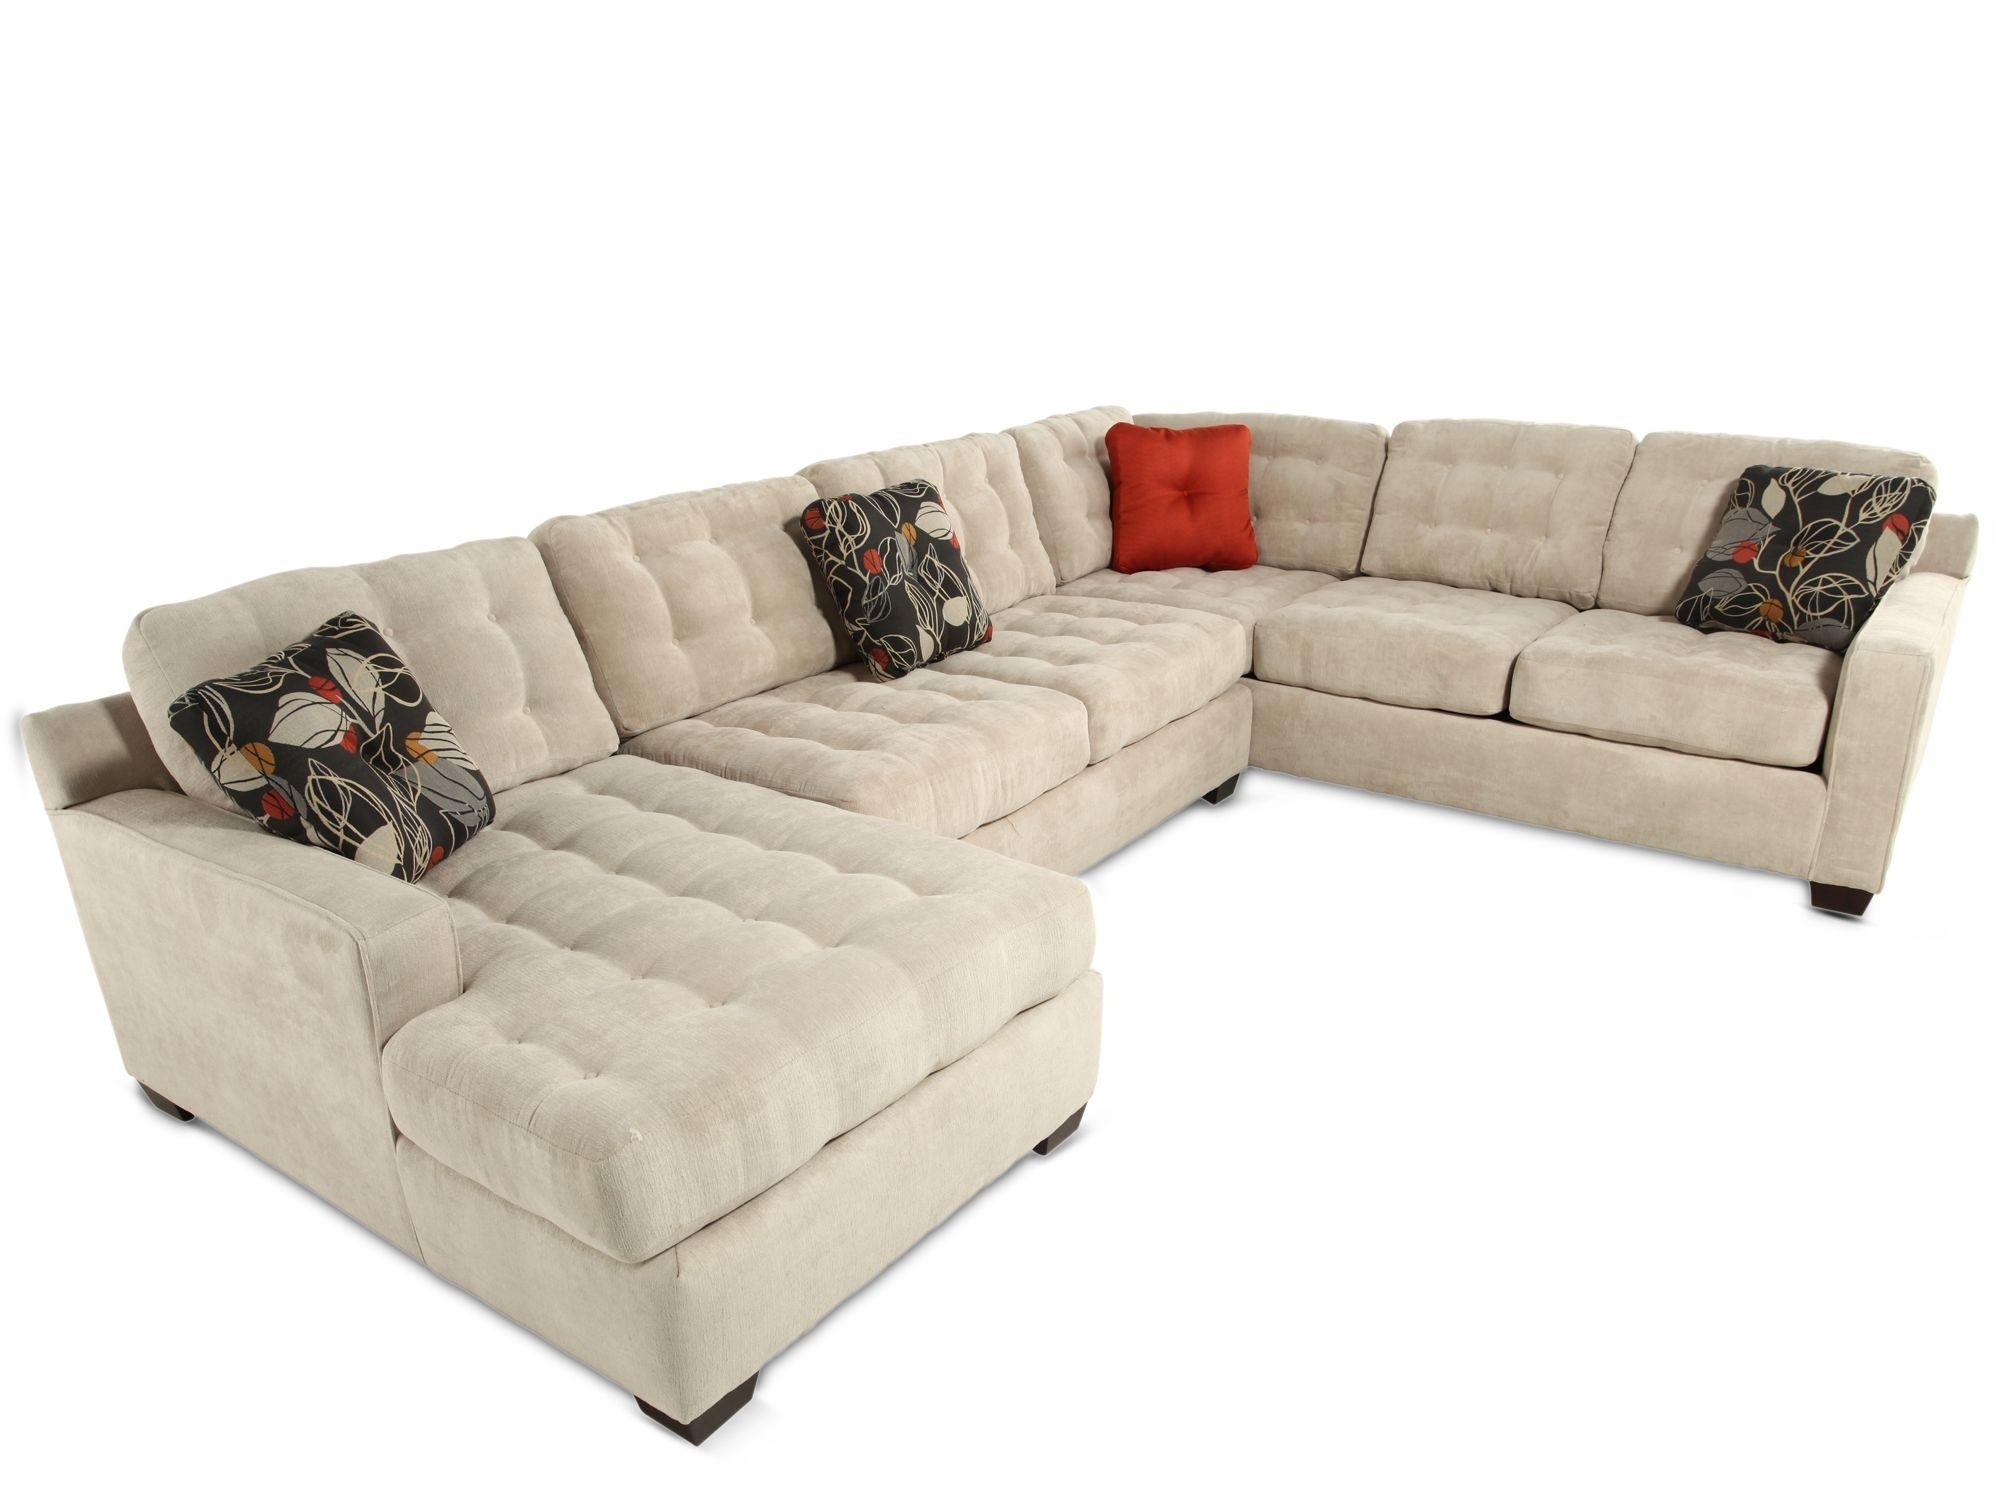 Sofas Center : Formal Living Room Sofa Design Broyhill Furniture Intended For Broyhill Emily Sofas (Image 20 of 20)